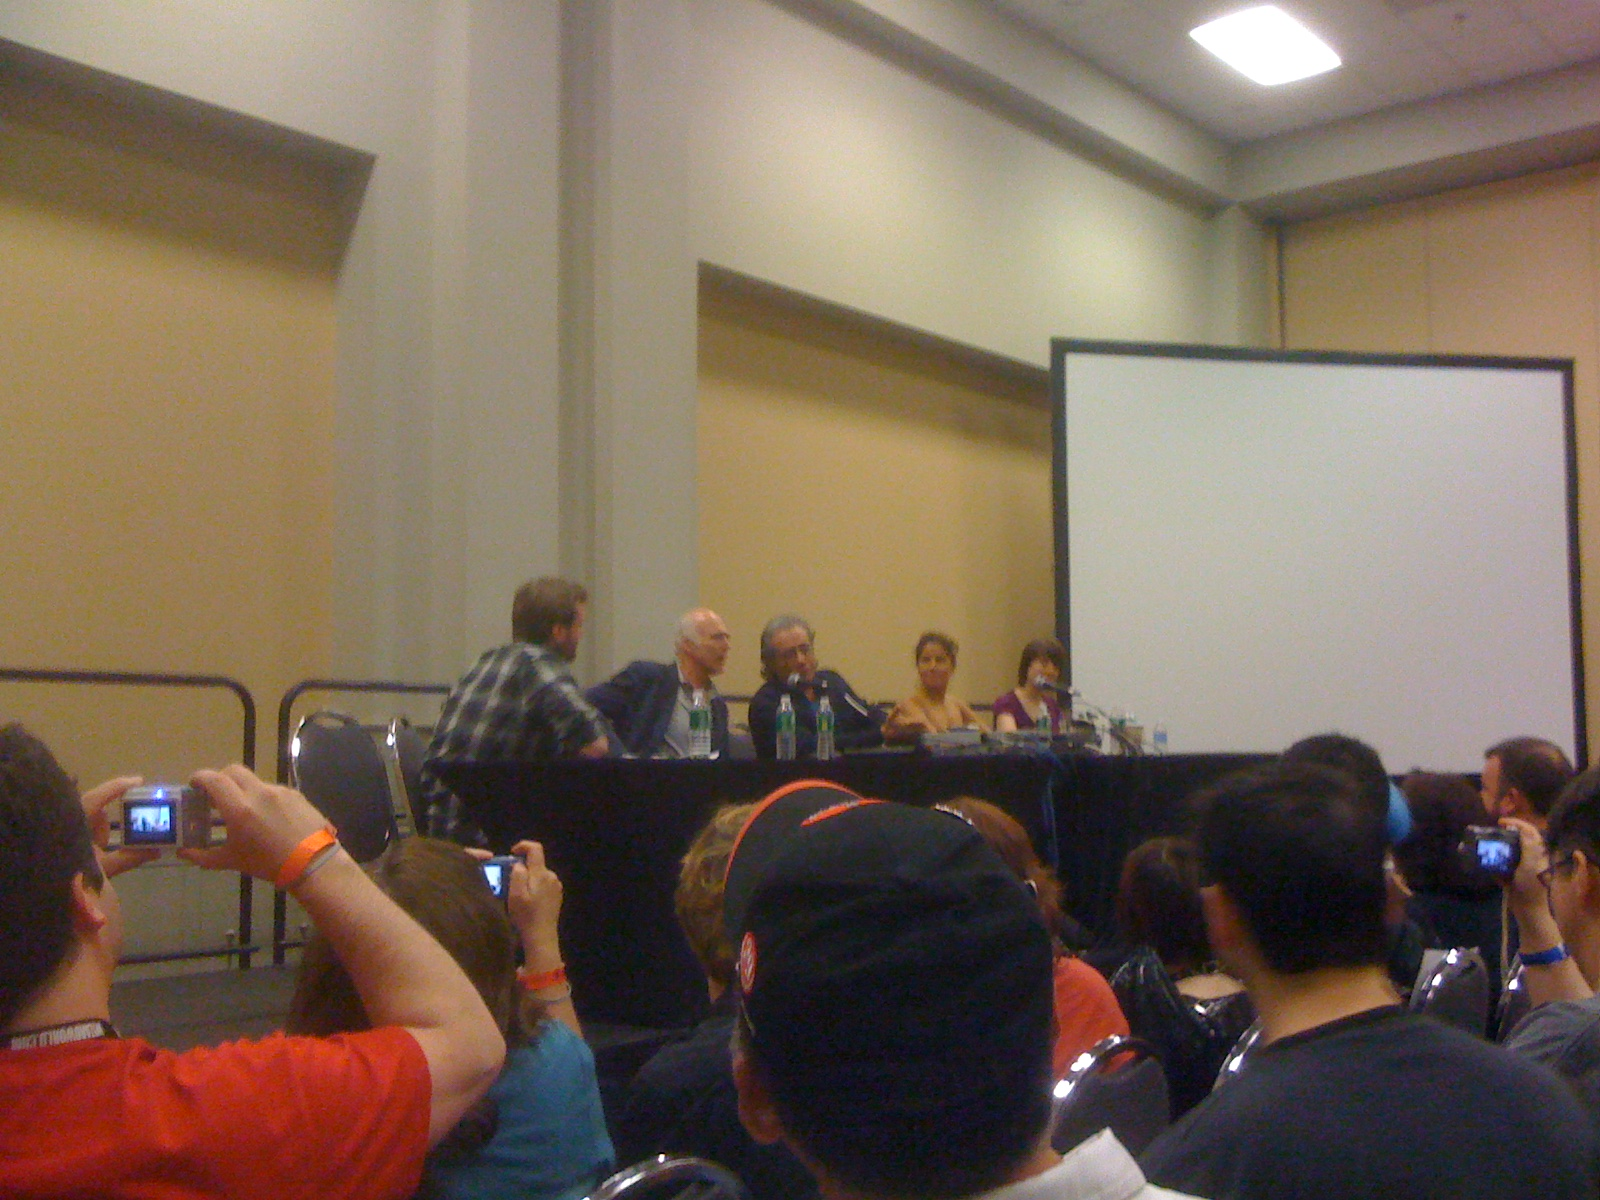 If you are one of these panel-goers snapping pics, I want them! Email me at jimgibbons1-AT-gmail-DOT-com!